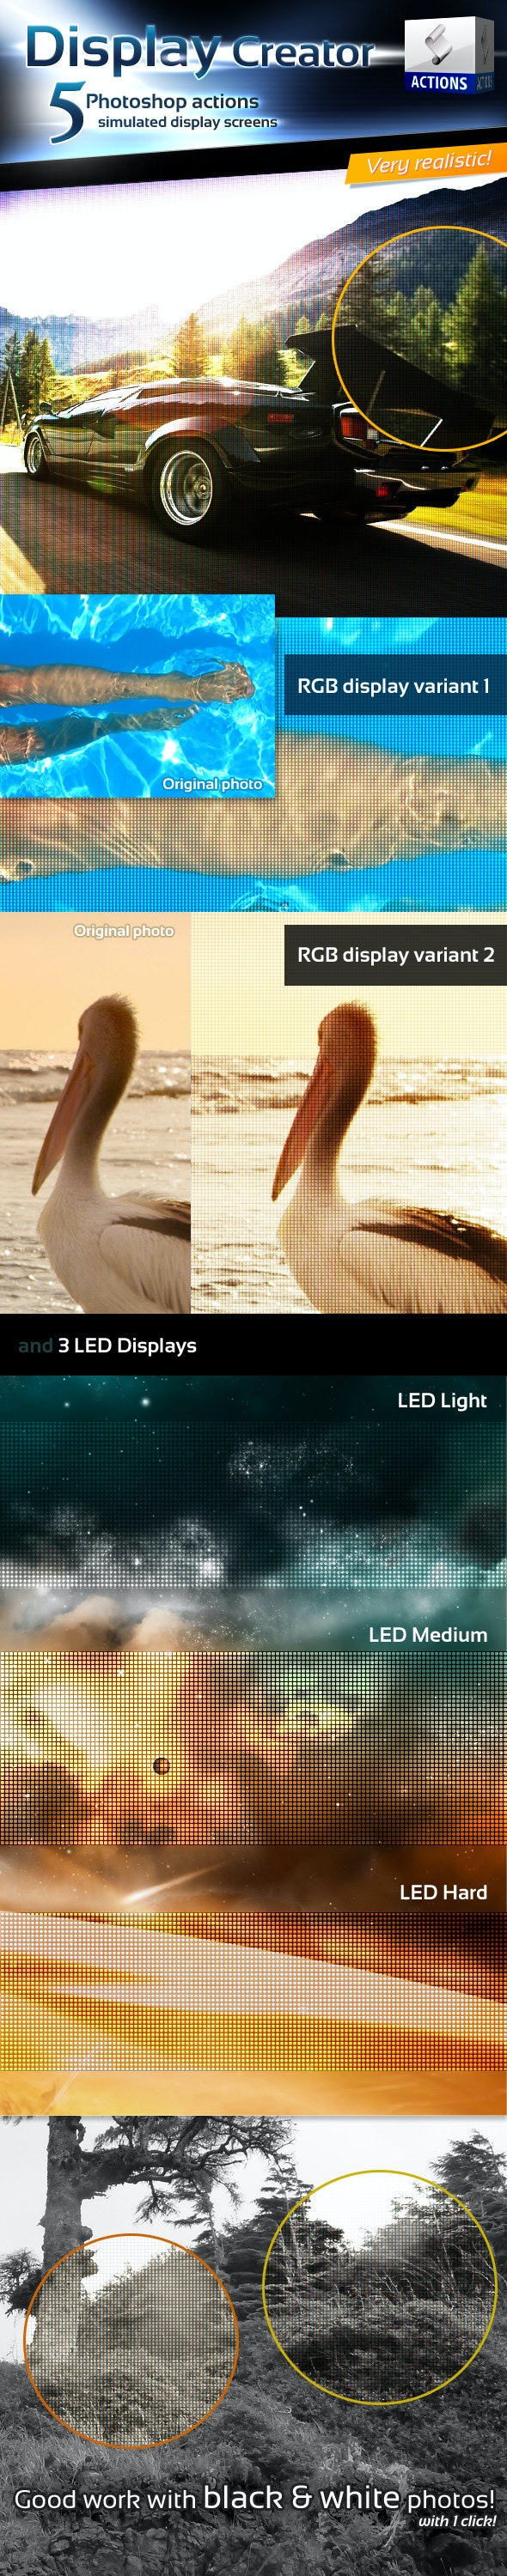 Display Creator - Photoshop Actions - Photo Effects Actions